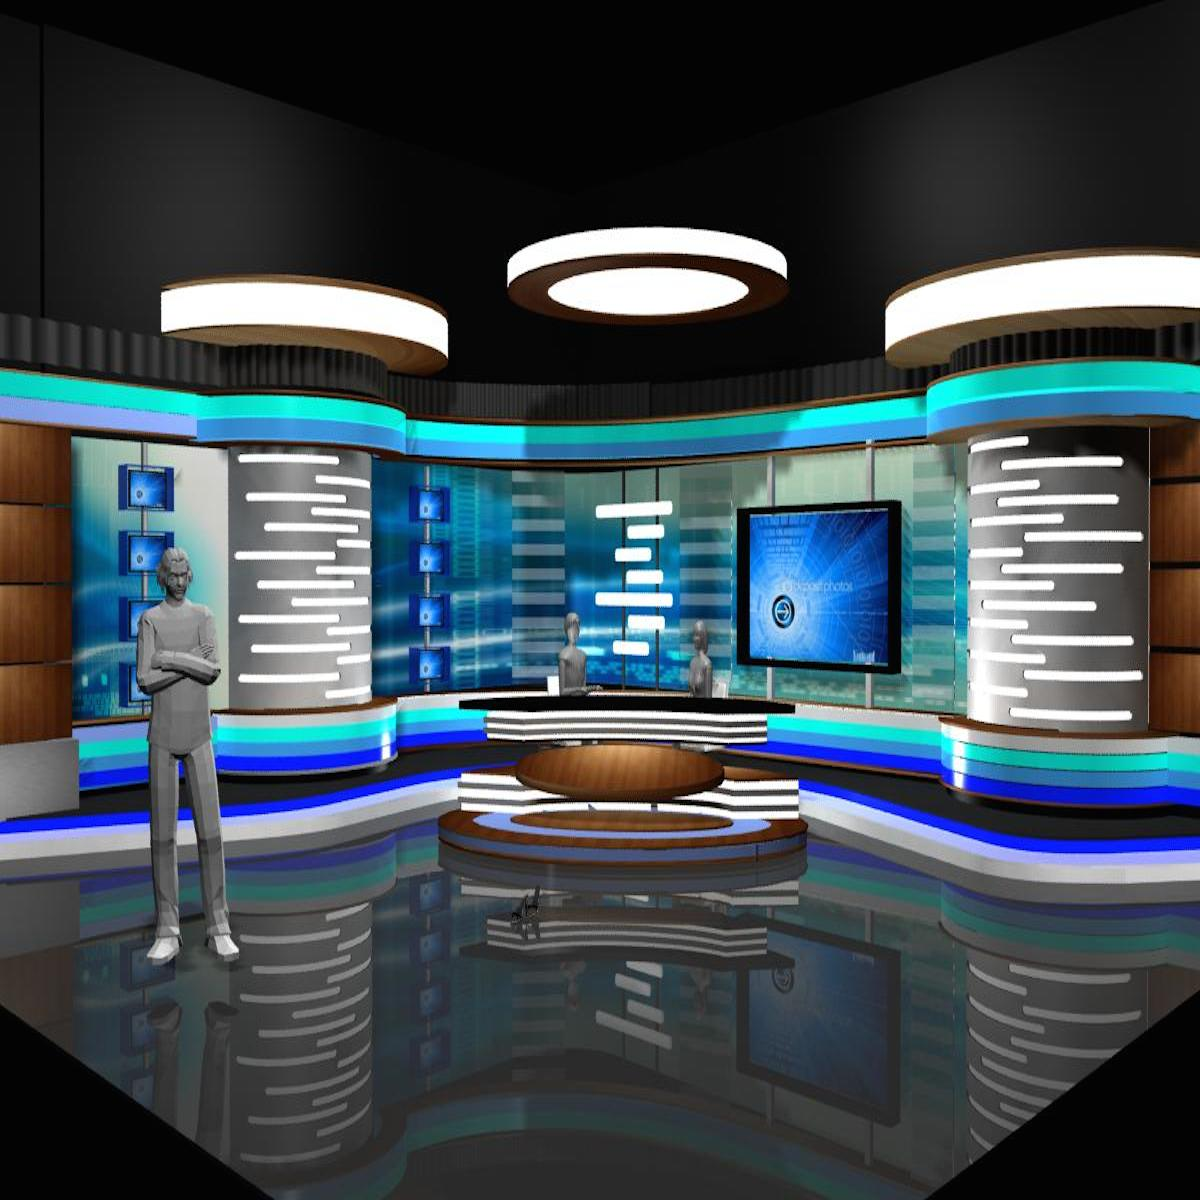 news room studio 002 3d model 3ds max dxf dwg fbx texture obj 215530